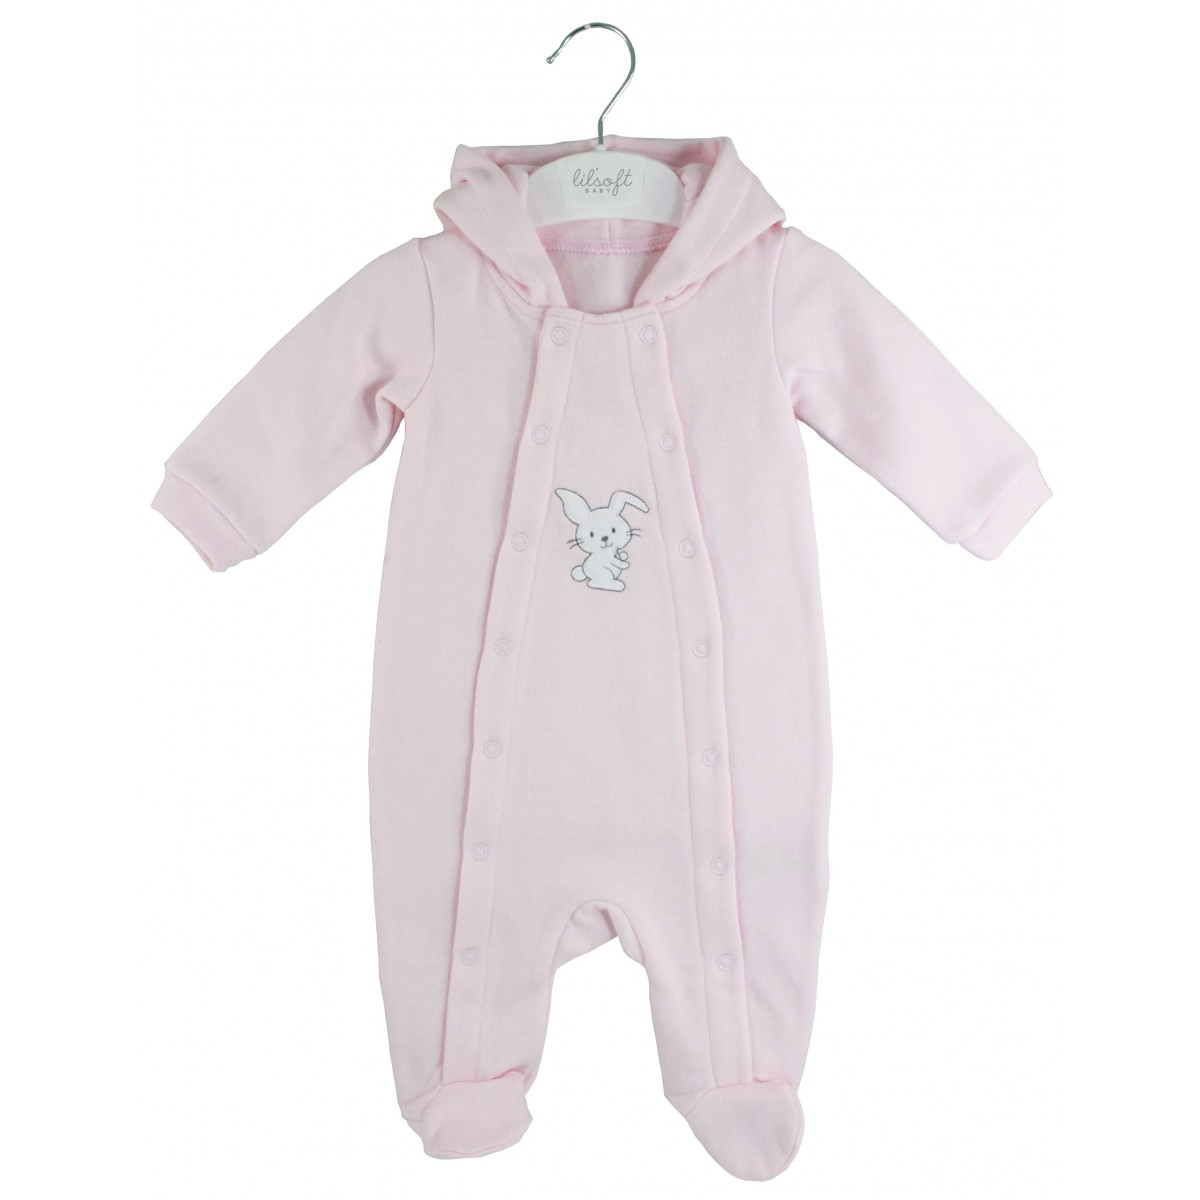 e4cd4205bb01 LILSOFT BABY HOODED SLEEPSUIT for Lilsoft Baby